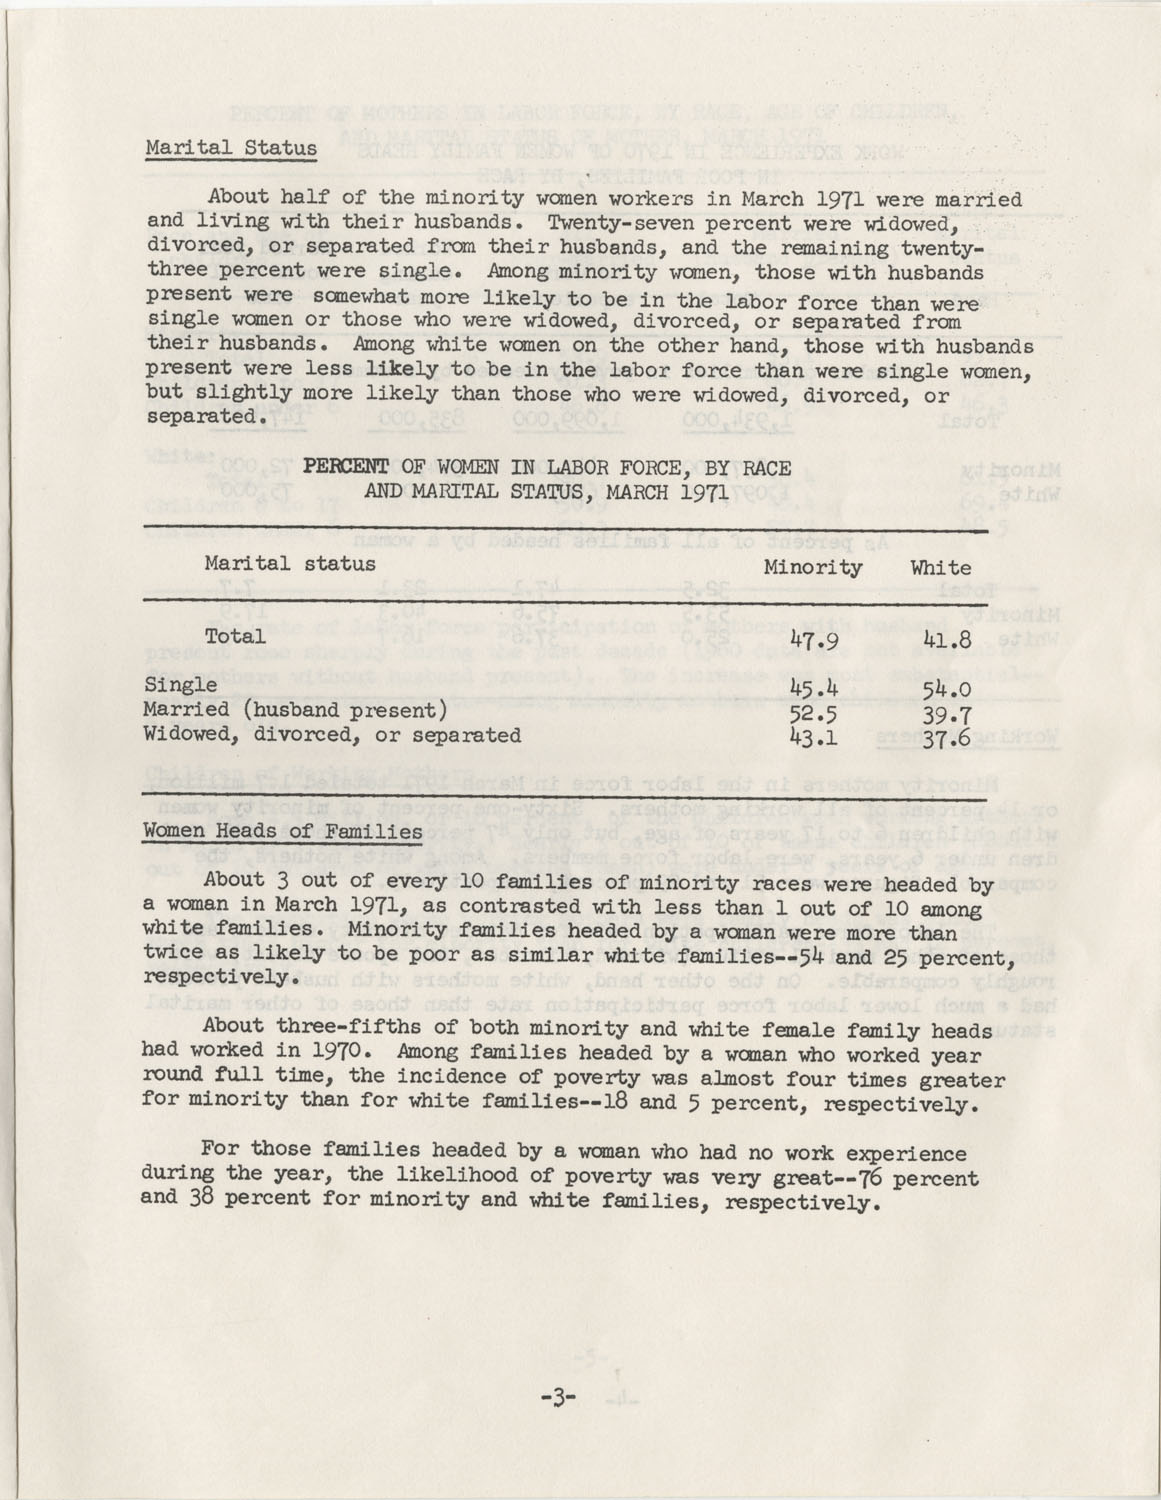 Facts on Women Workers of Minority Races, U.S. Department of Labor, June 1972, Page 3